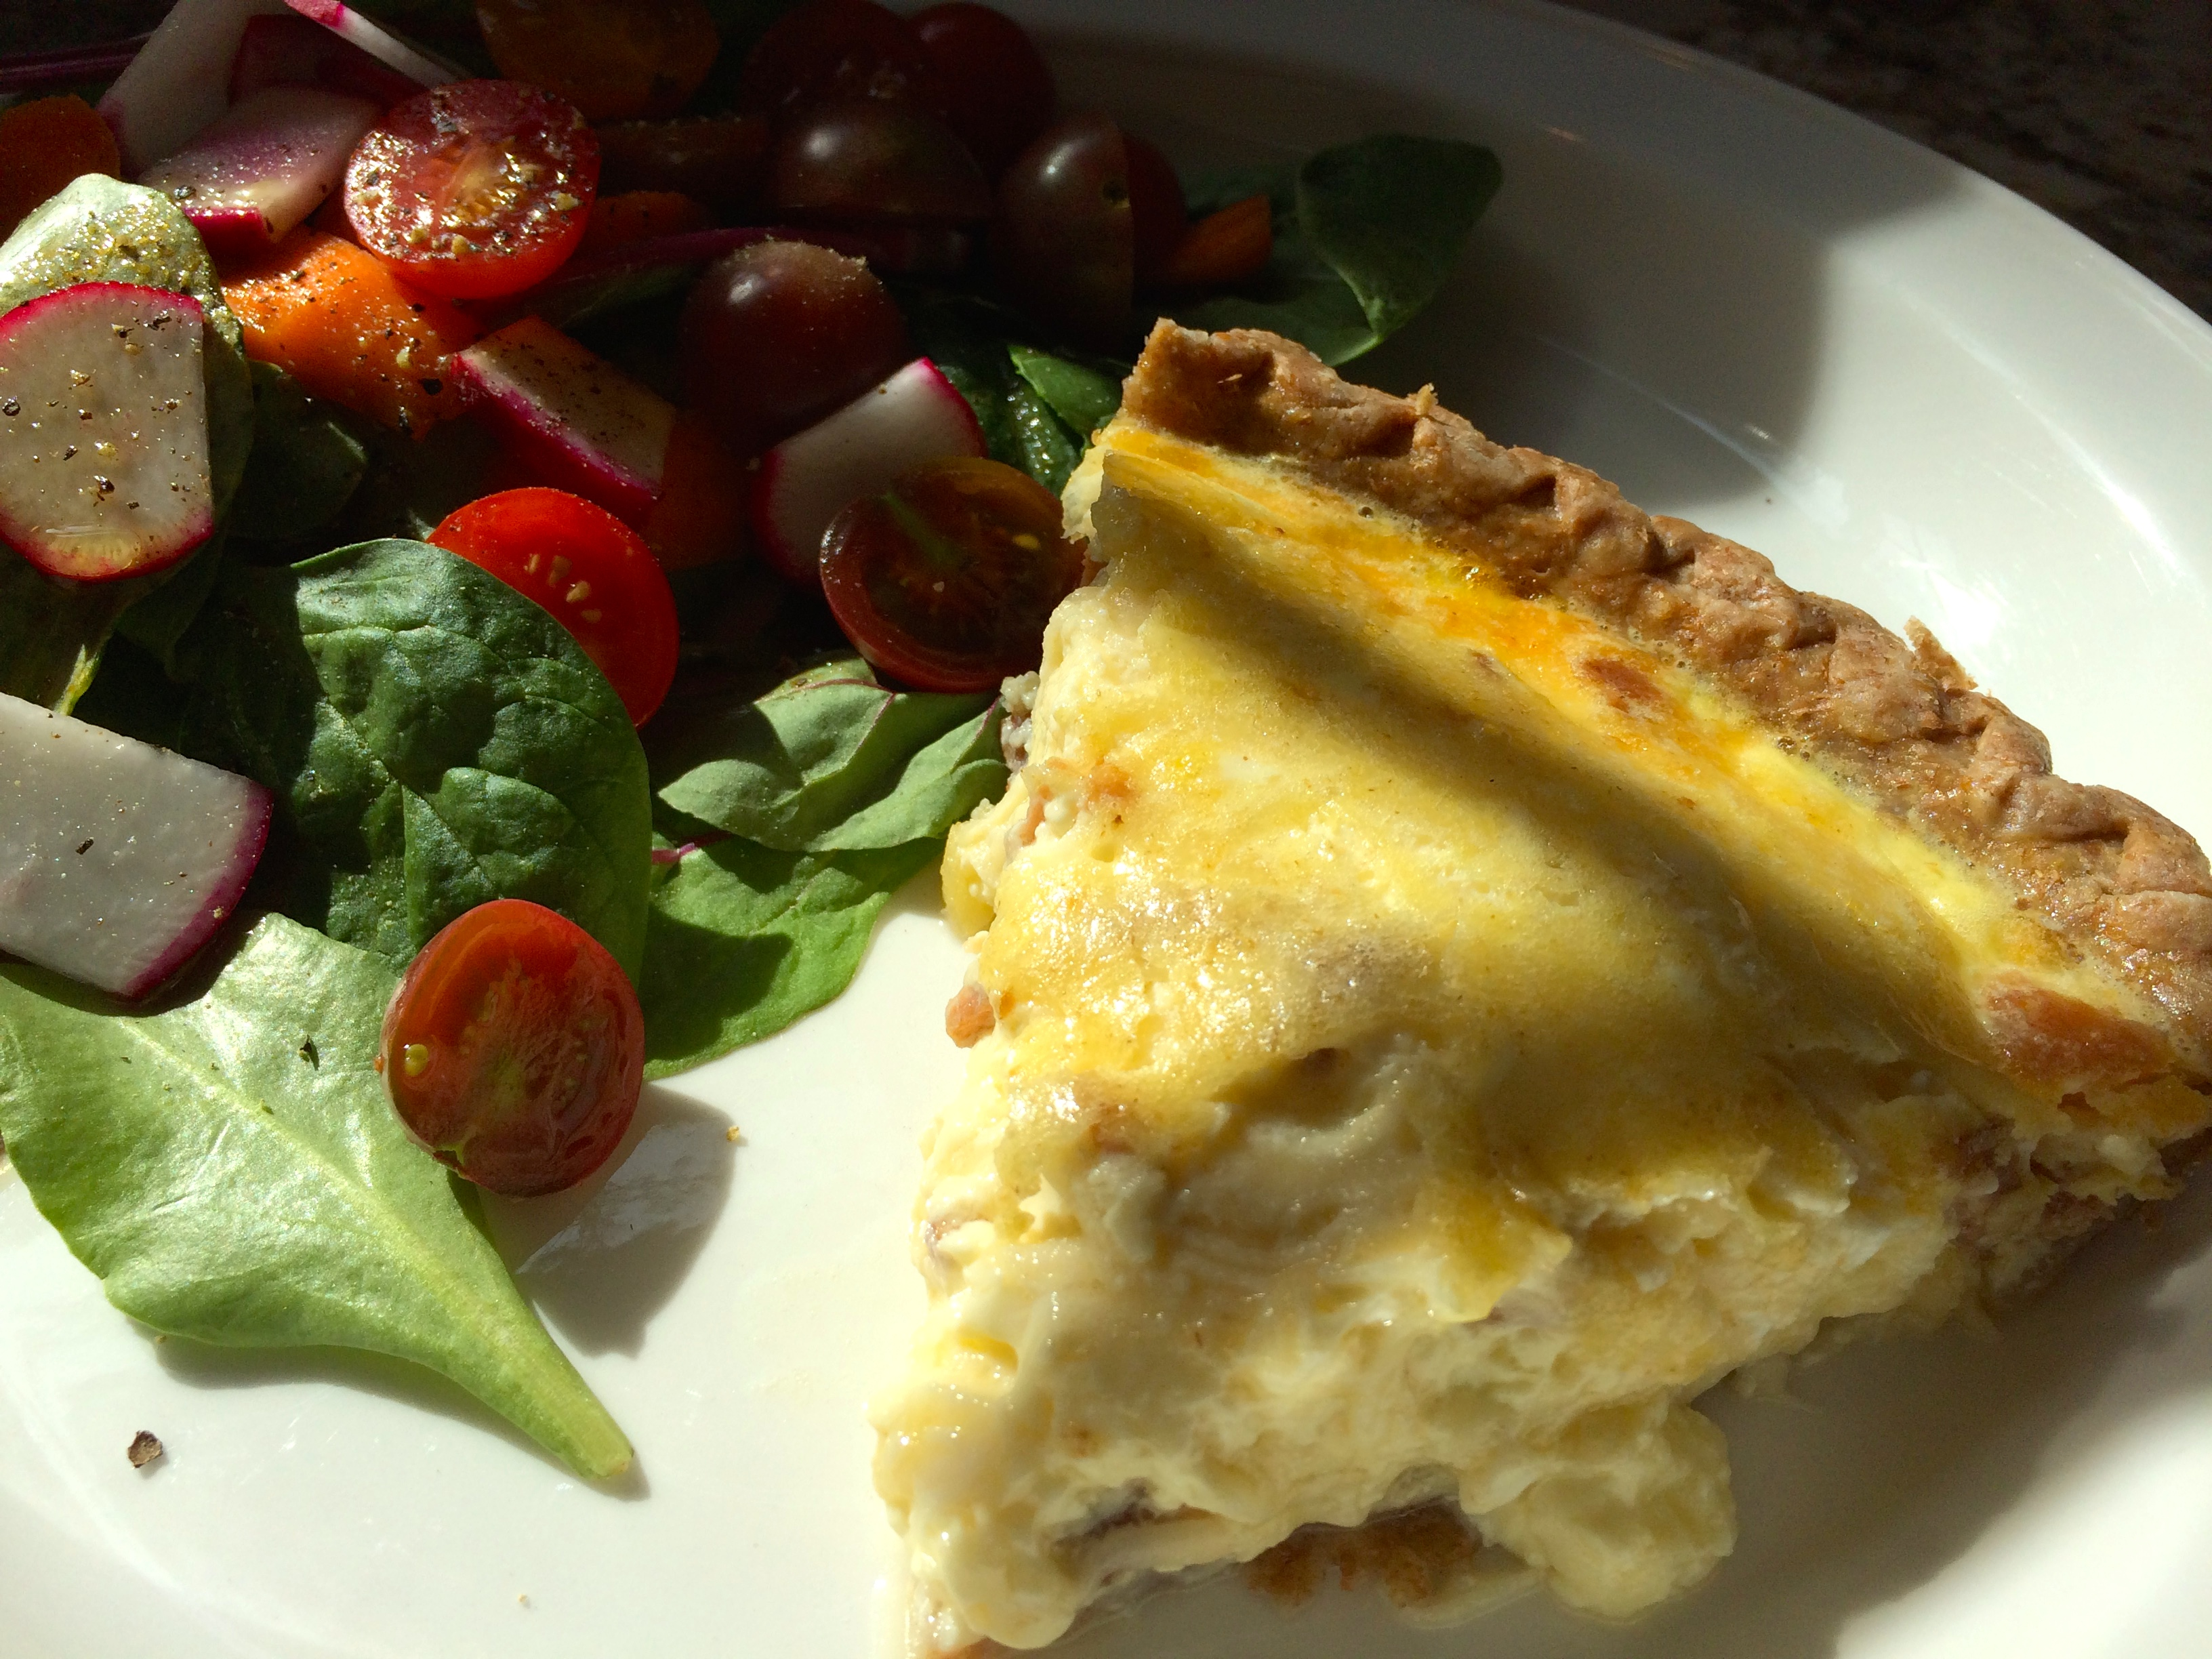 Recipe quiche lorraine and yes real men eat quiche quiche artfoodhome quiche lorraine forumfinder Choice Image